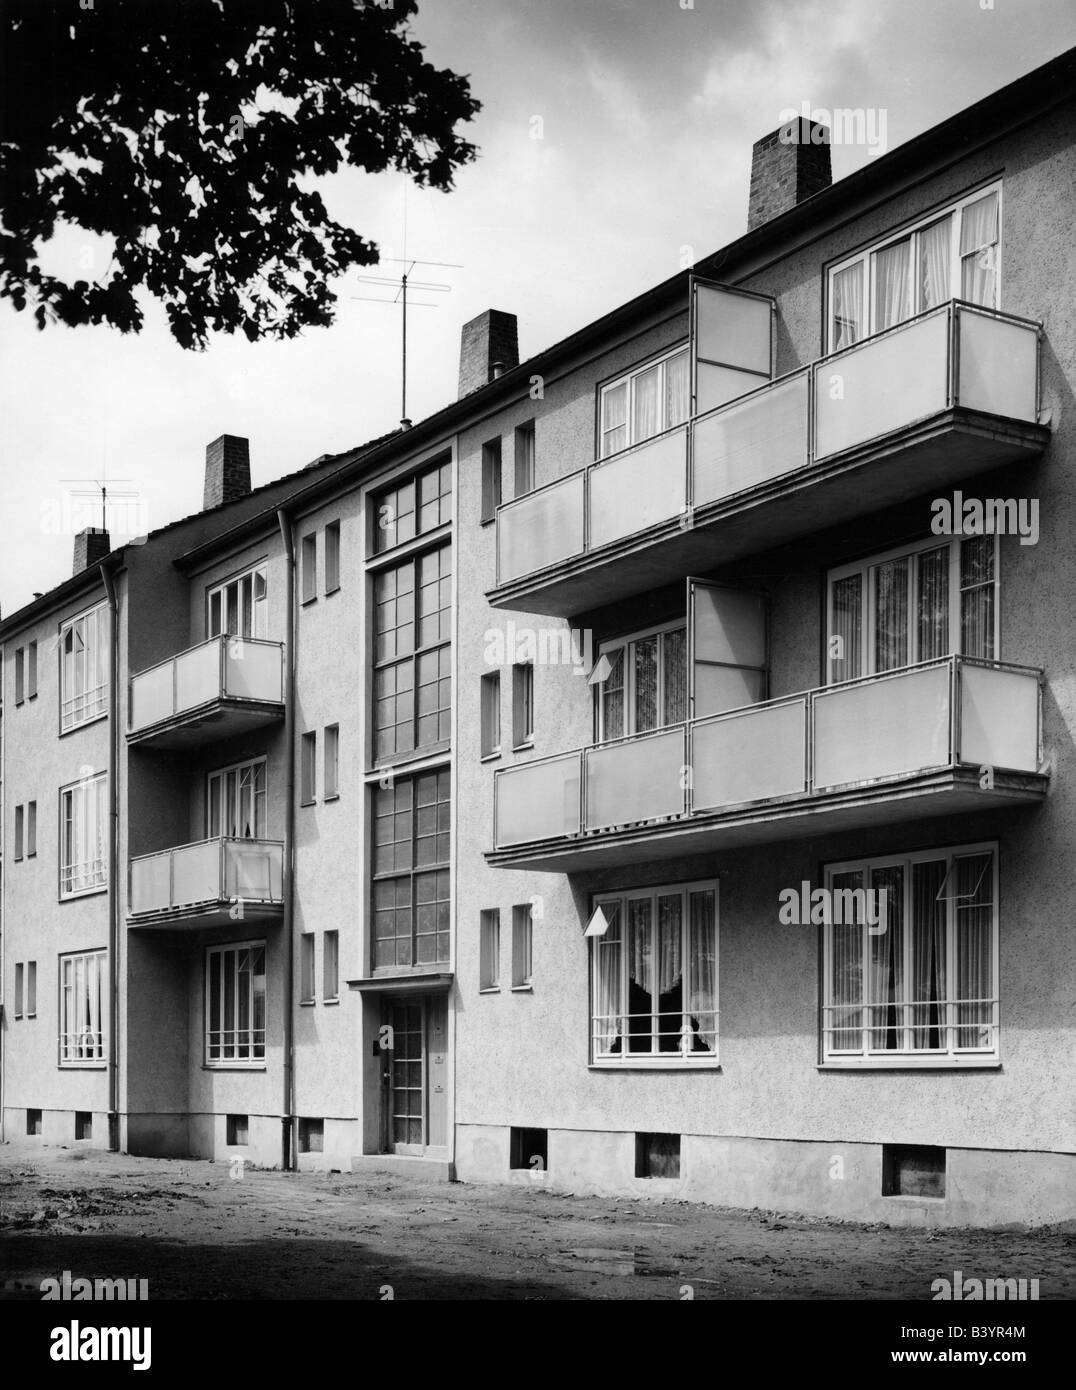 architecture, buildings, appartement house, exterior view, Germany, 1952, Additional-Rights-Clearances-NA - Stock Image